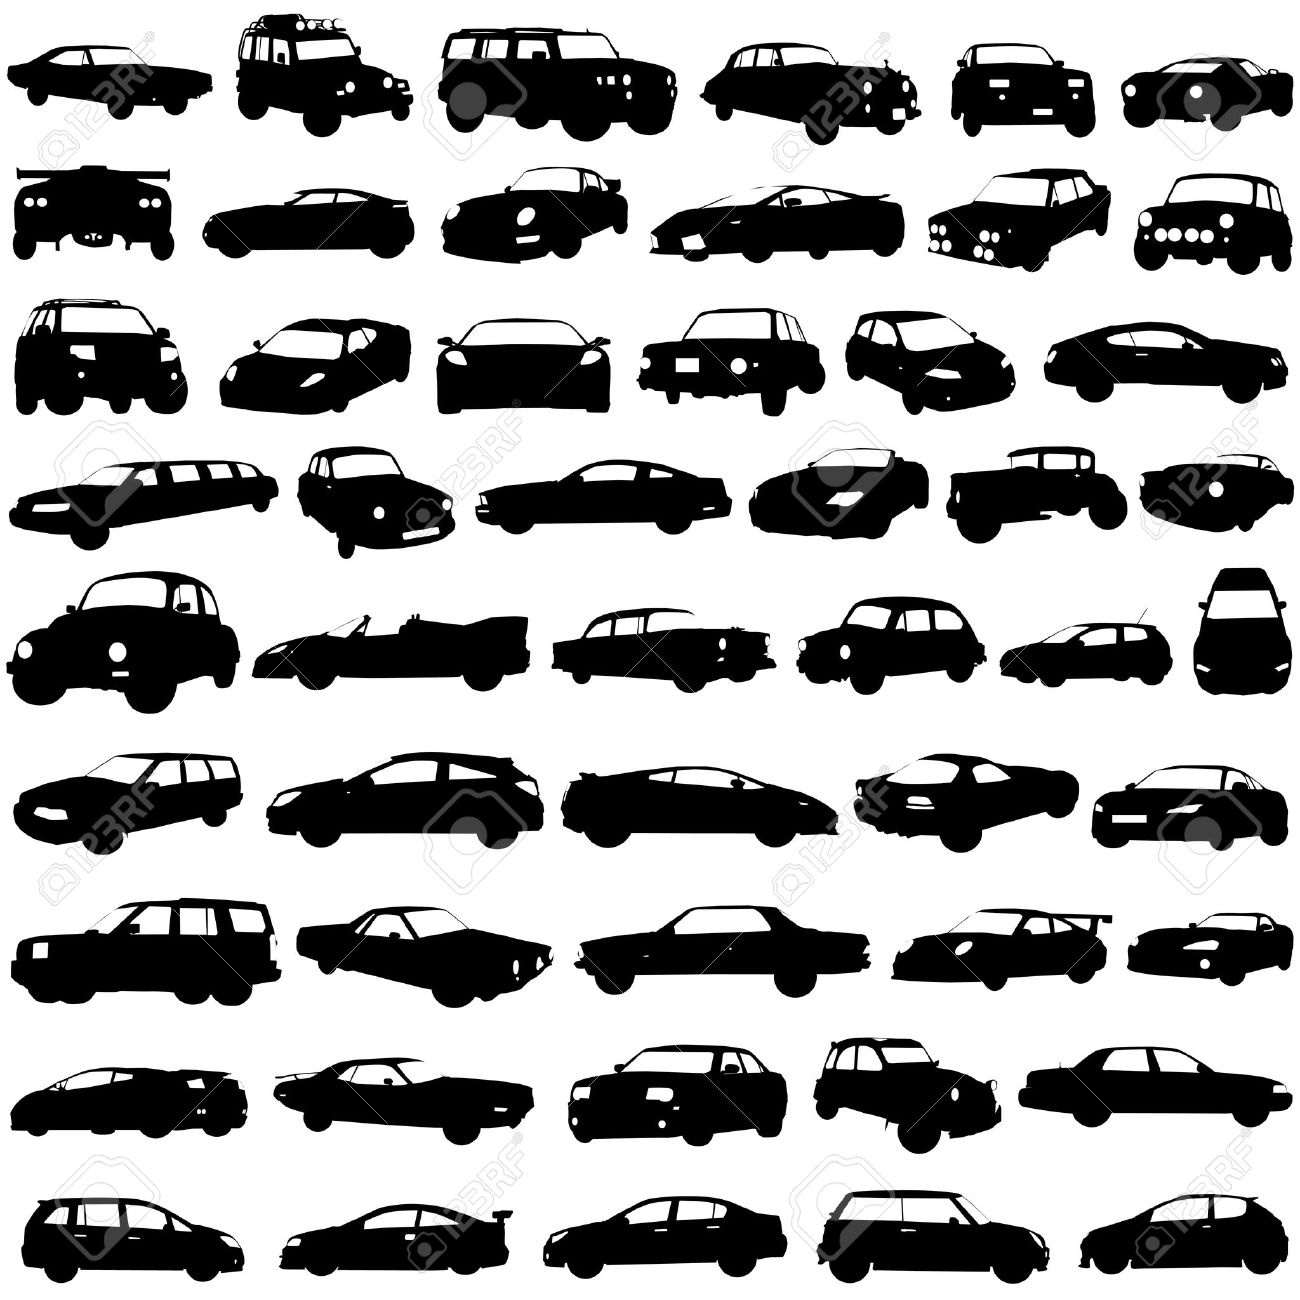 9447456-set-of-cars-car-silhouette-sports.jpg